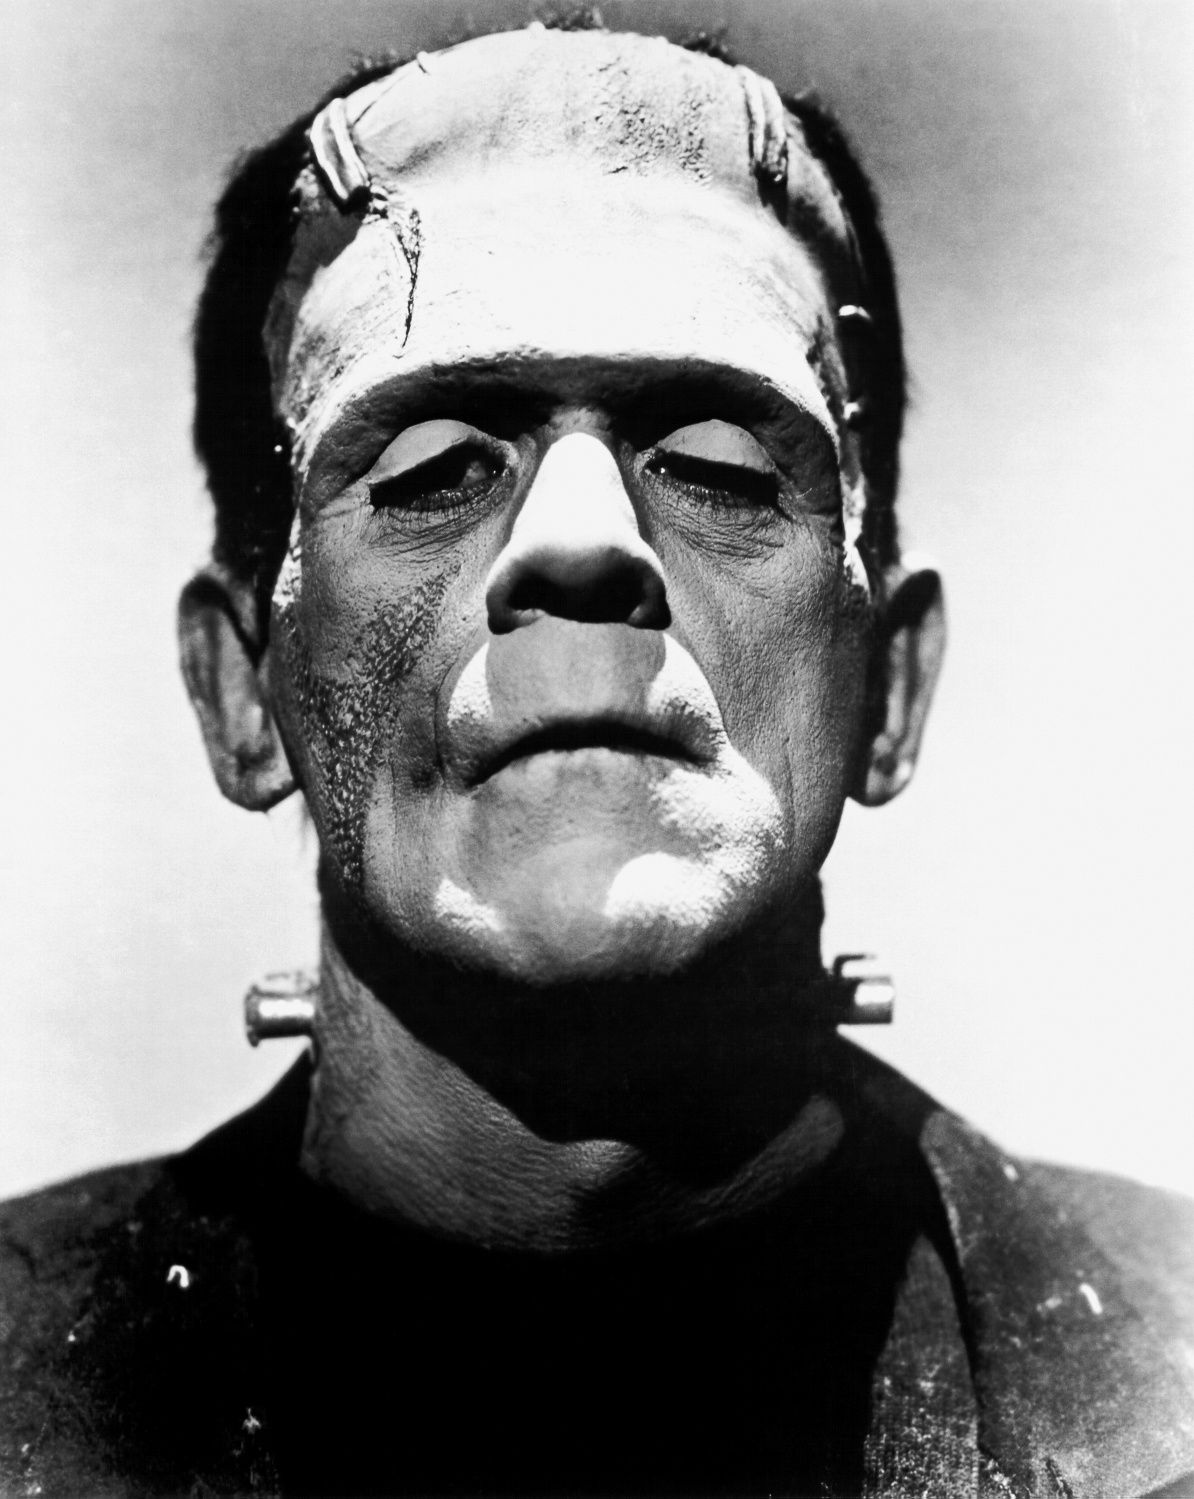 ff7b7bfec4 Scientists Find That Frankenstein s Monster Could Have Wiped Out Humanity